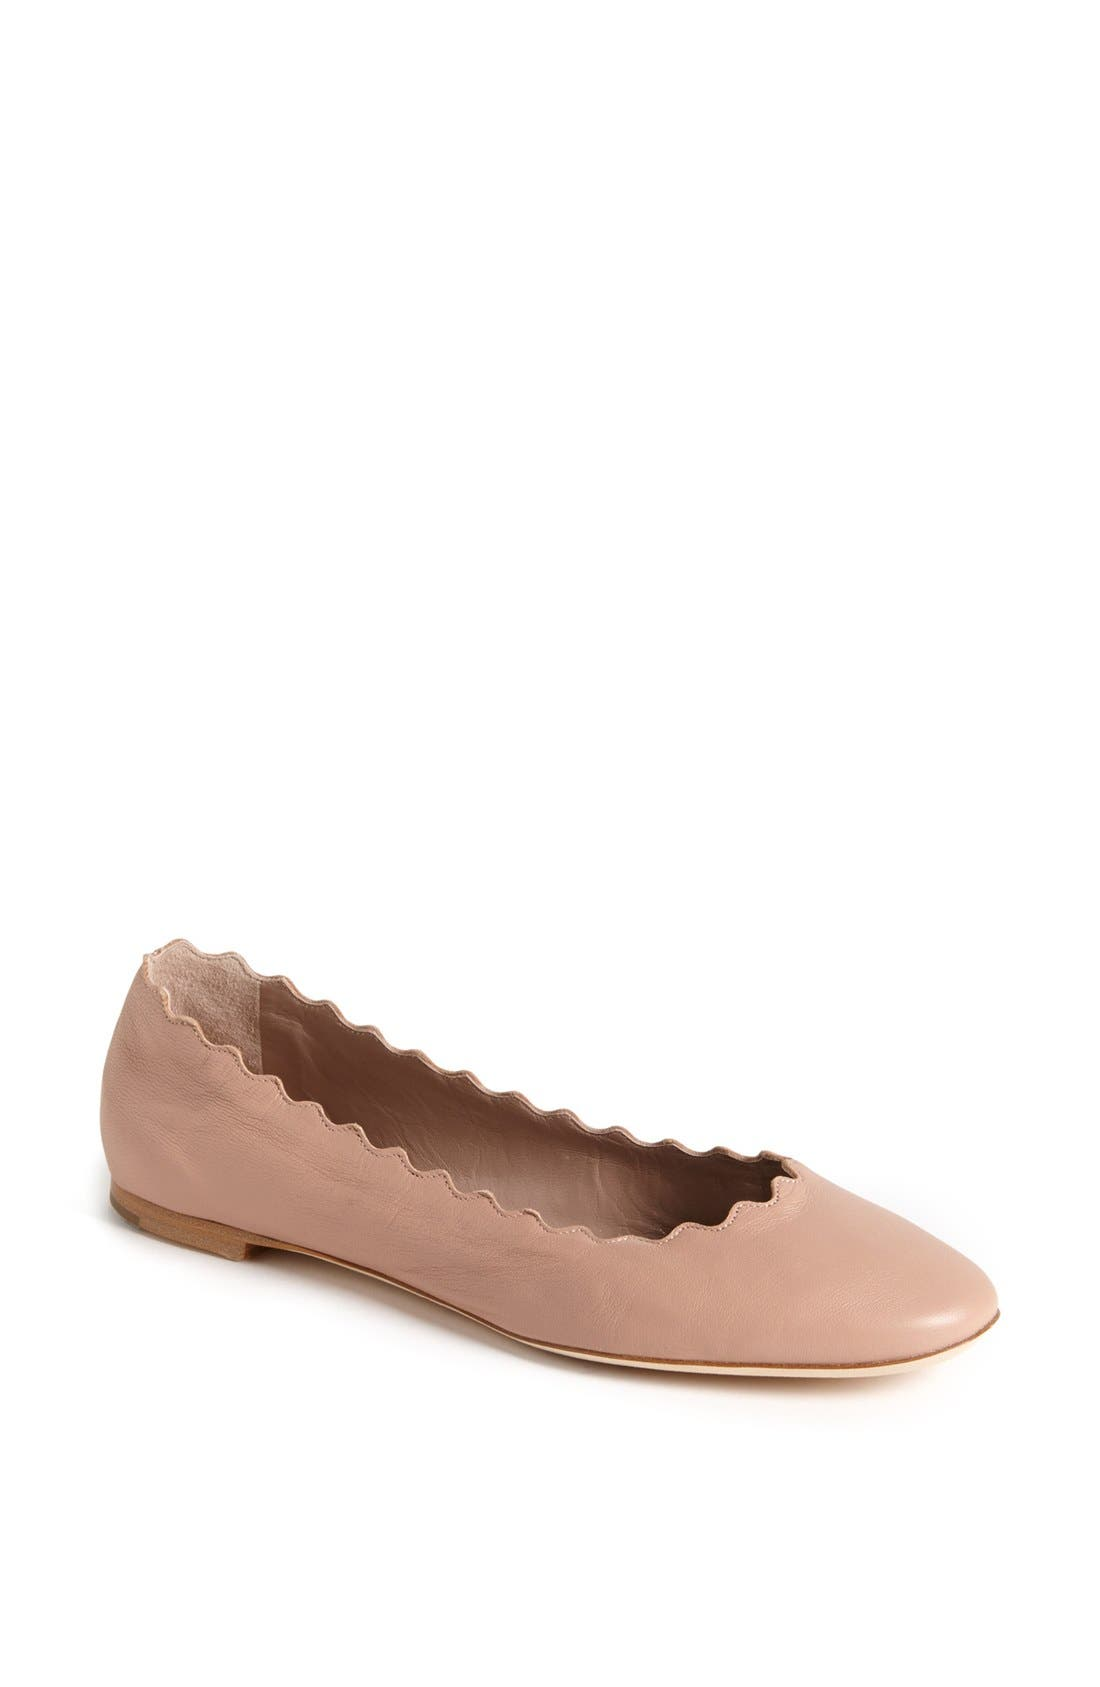 'Lauren' Scalloped Ballet Flat,                         Main,                         color, Taupe